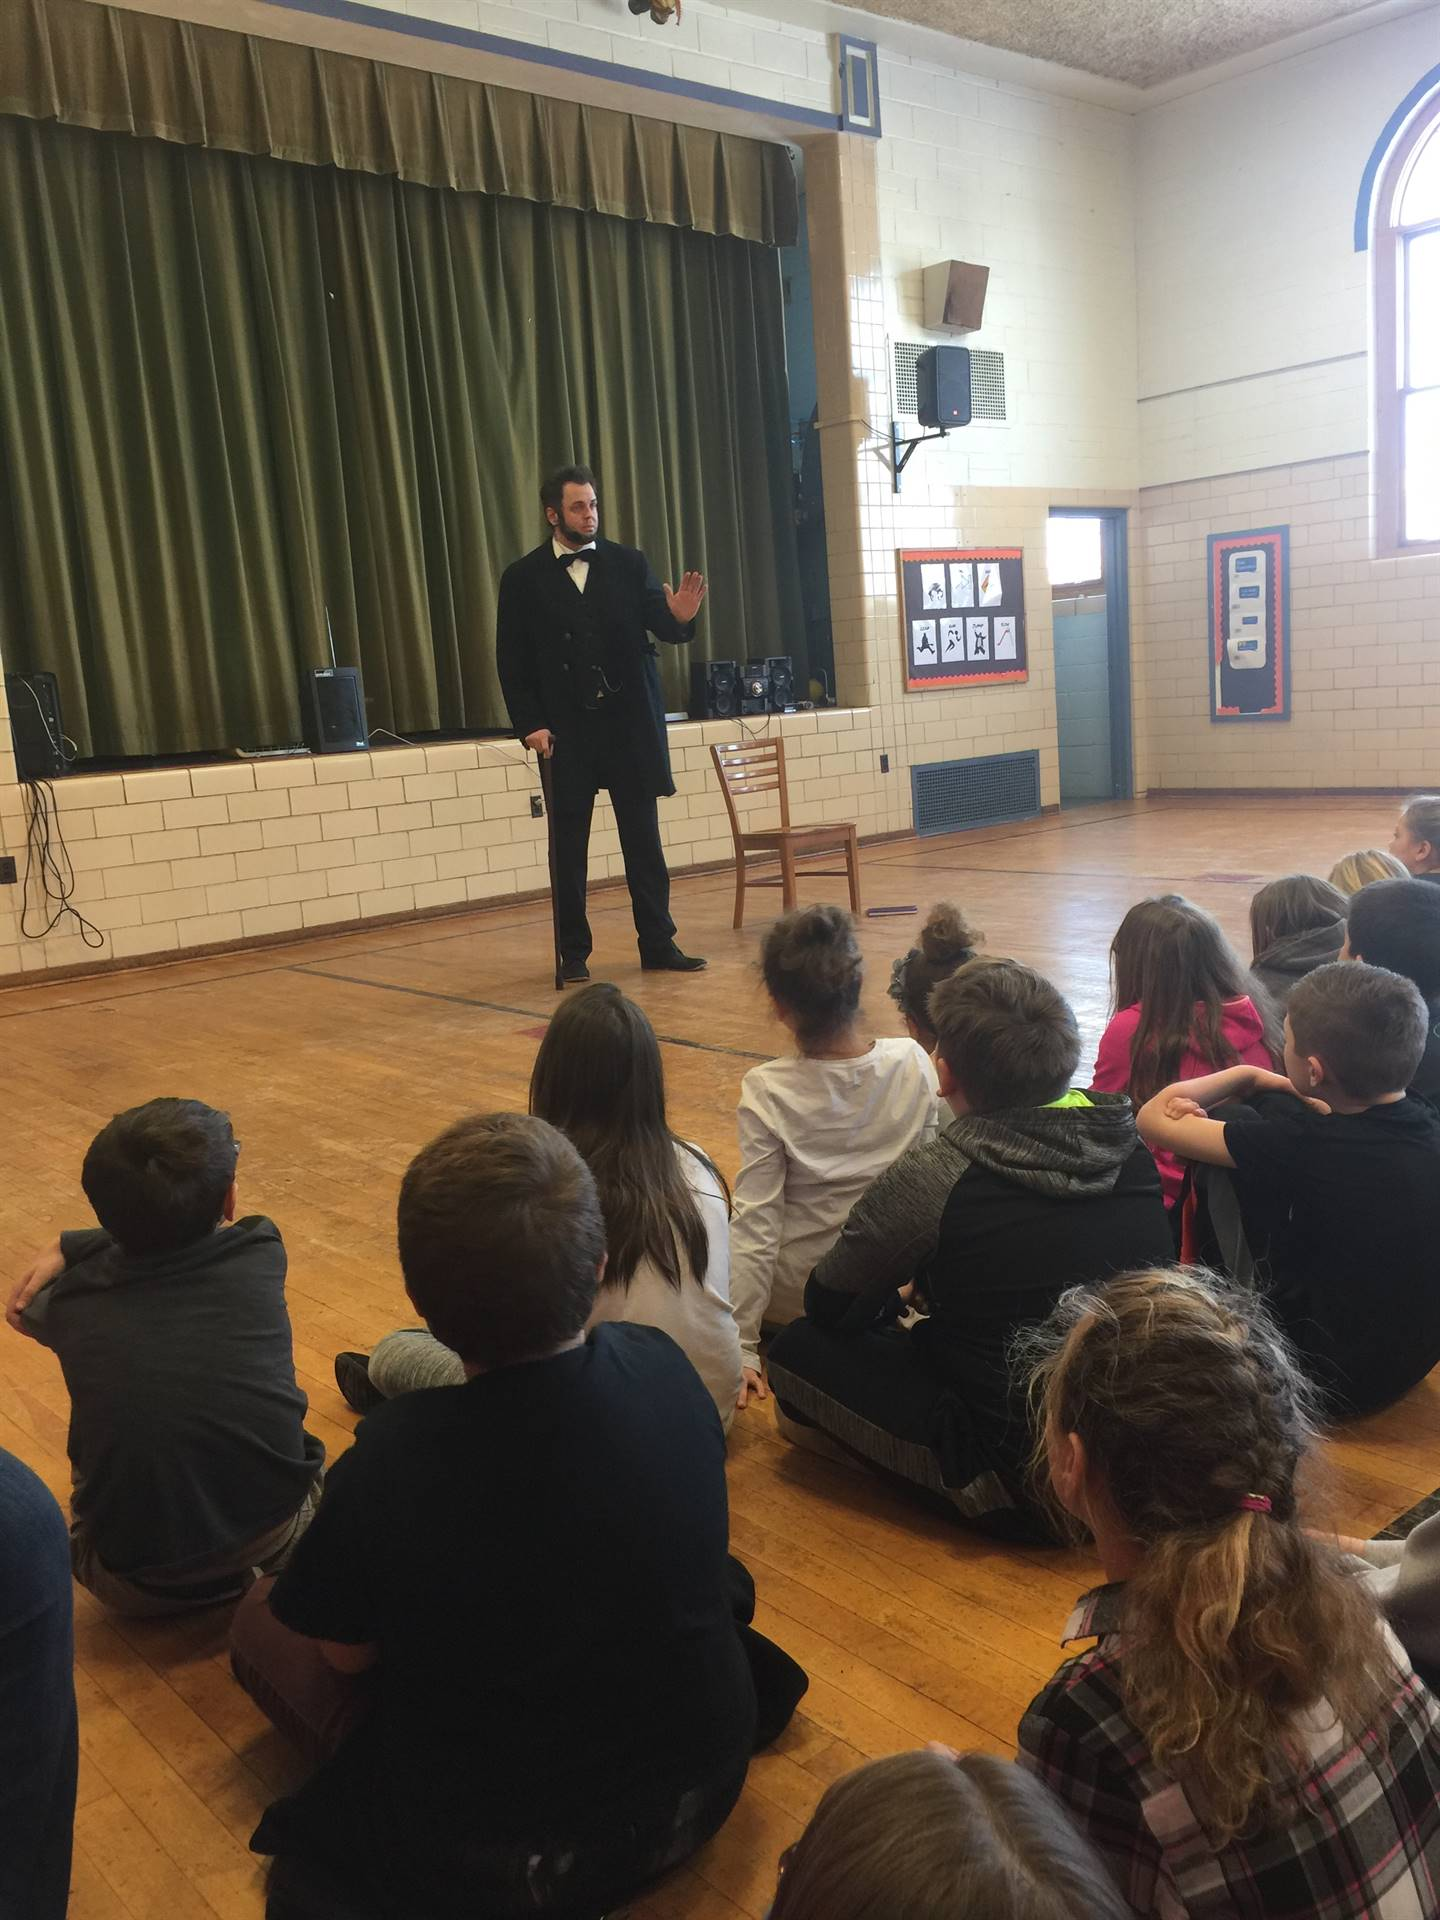 Abraham Lincoln Assembly